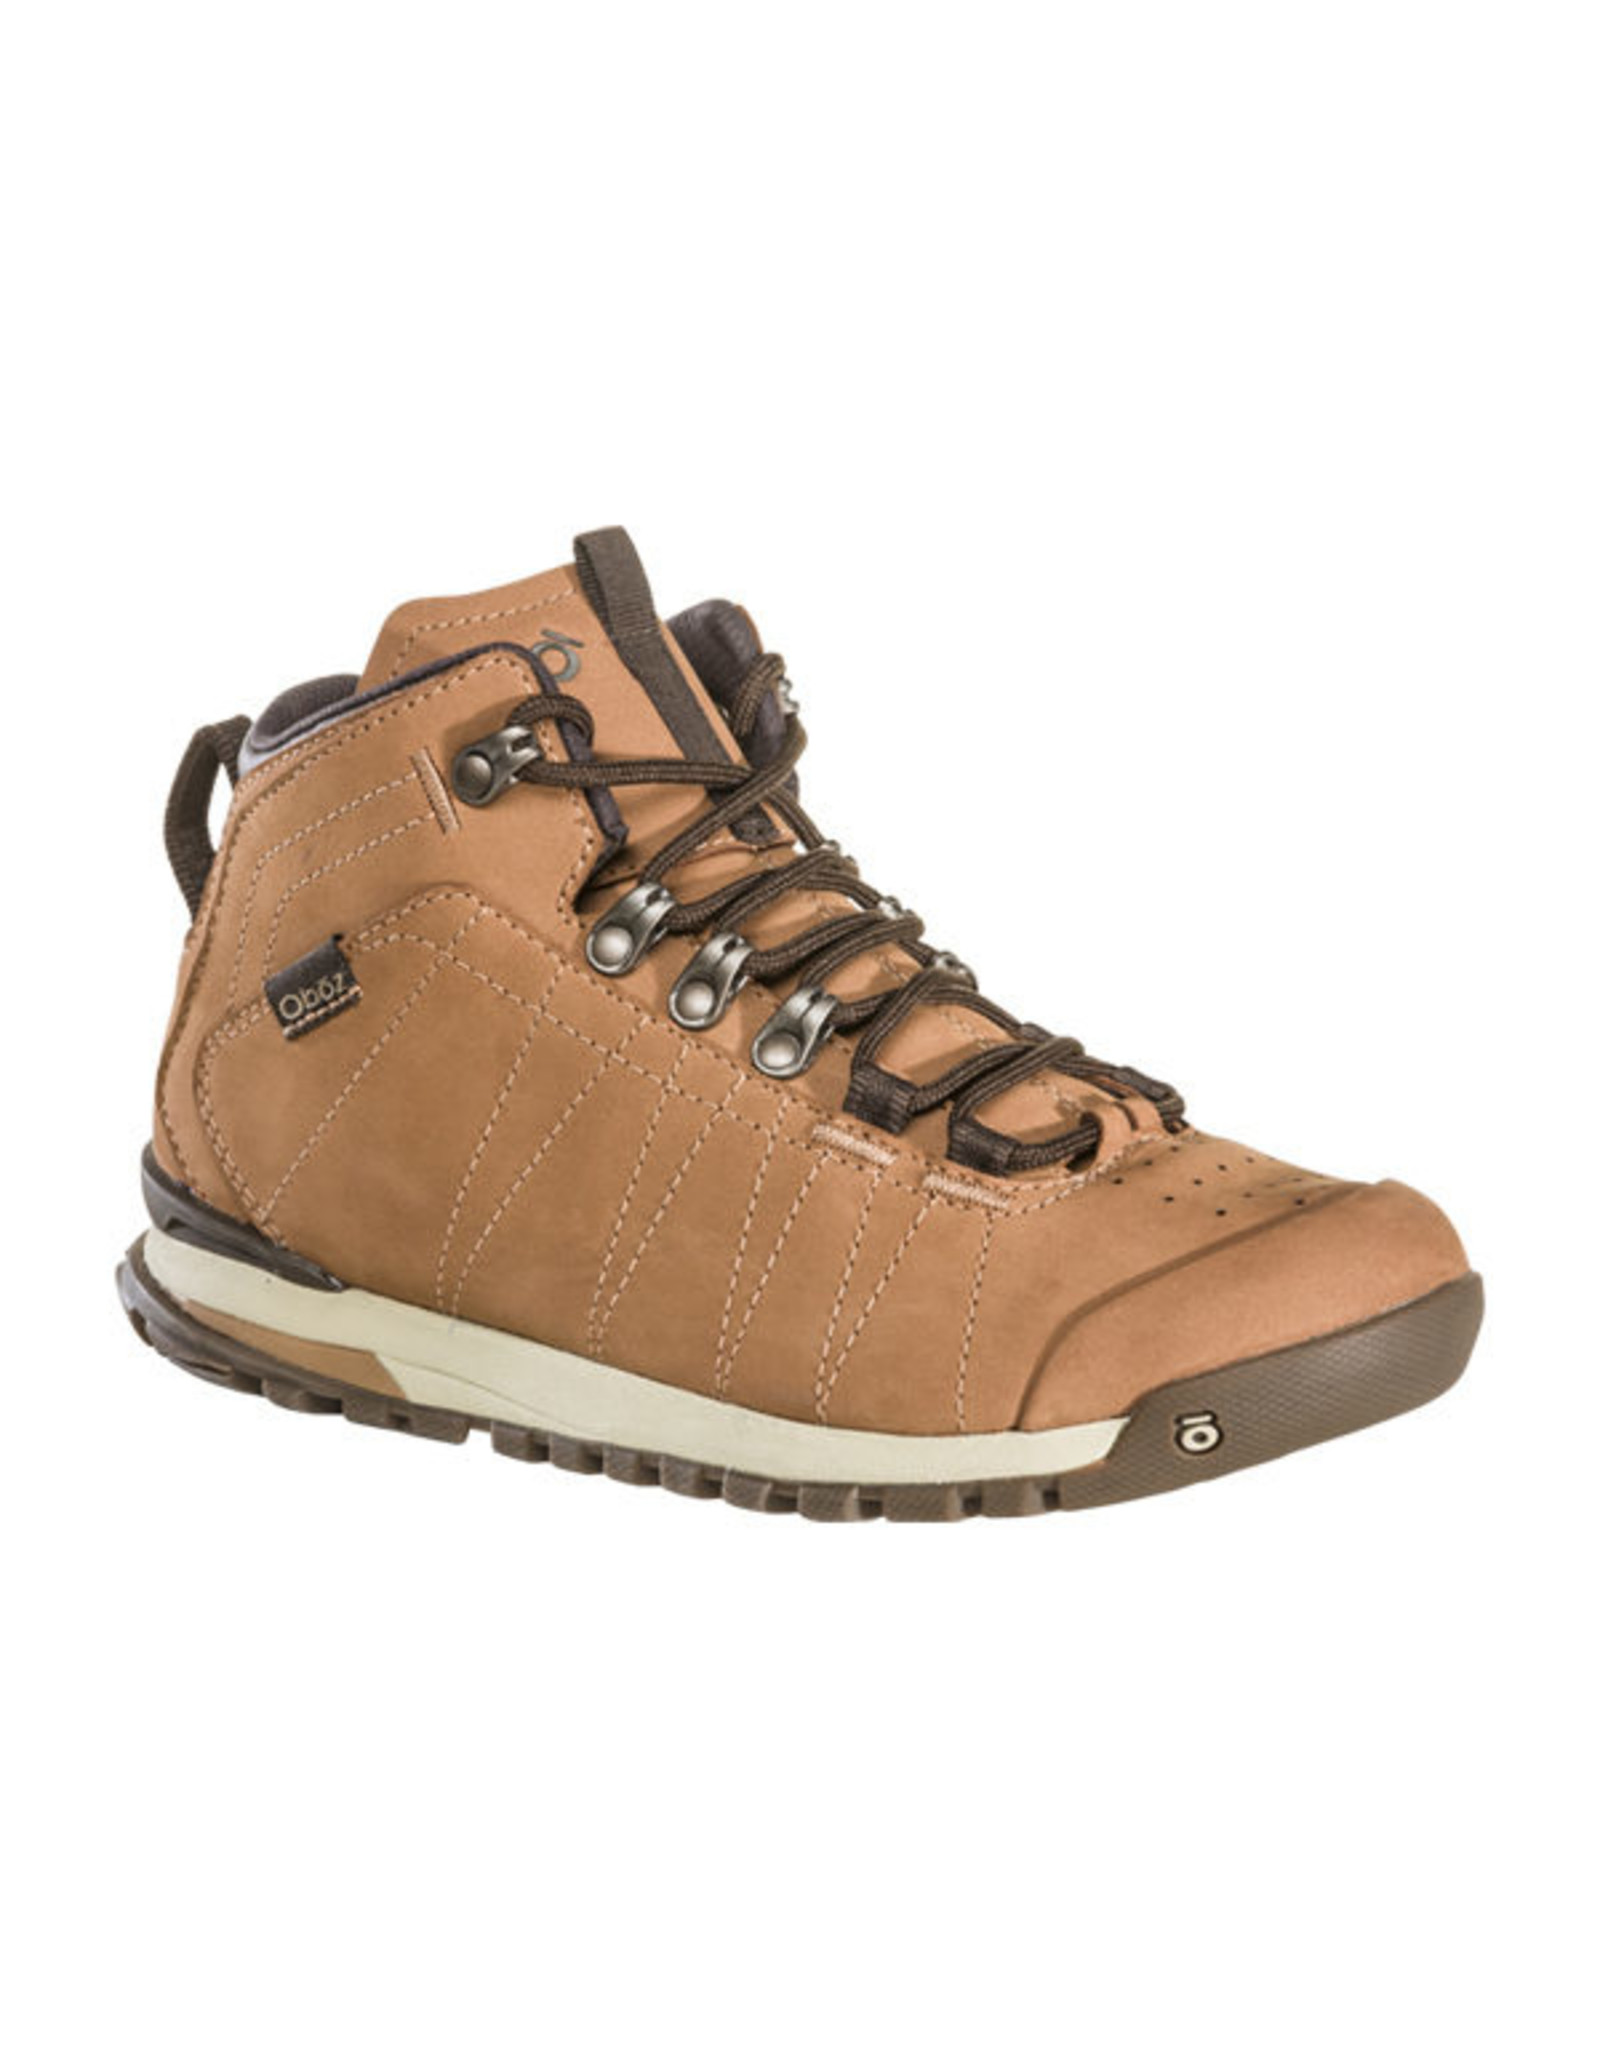 Obōz Oboz - W's - Bozeman Mid Leather -